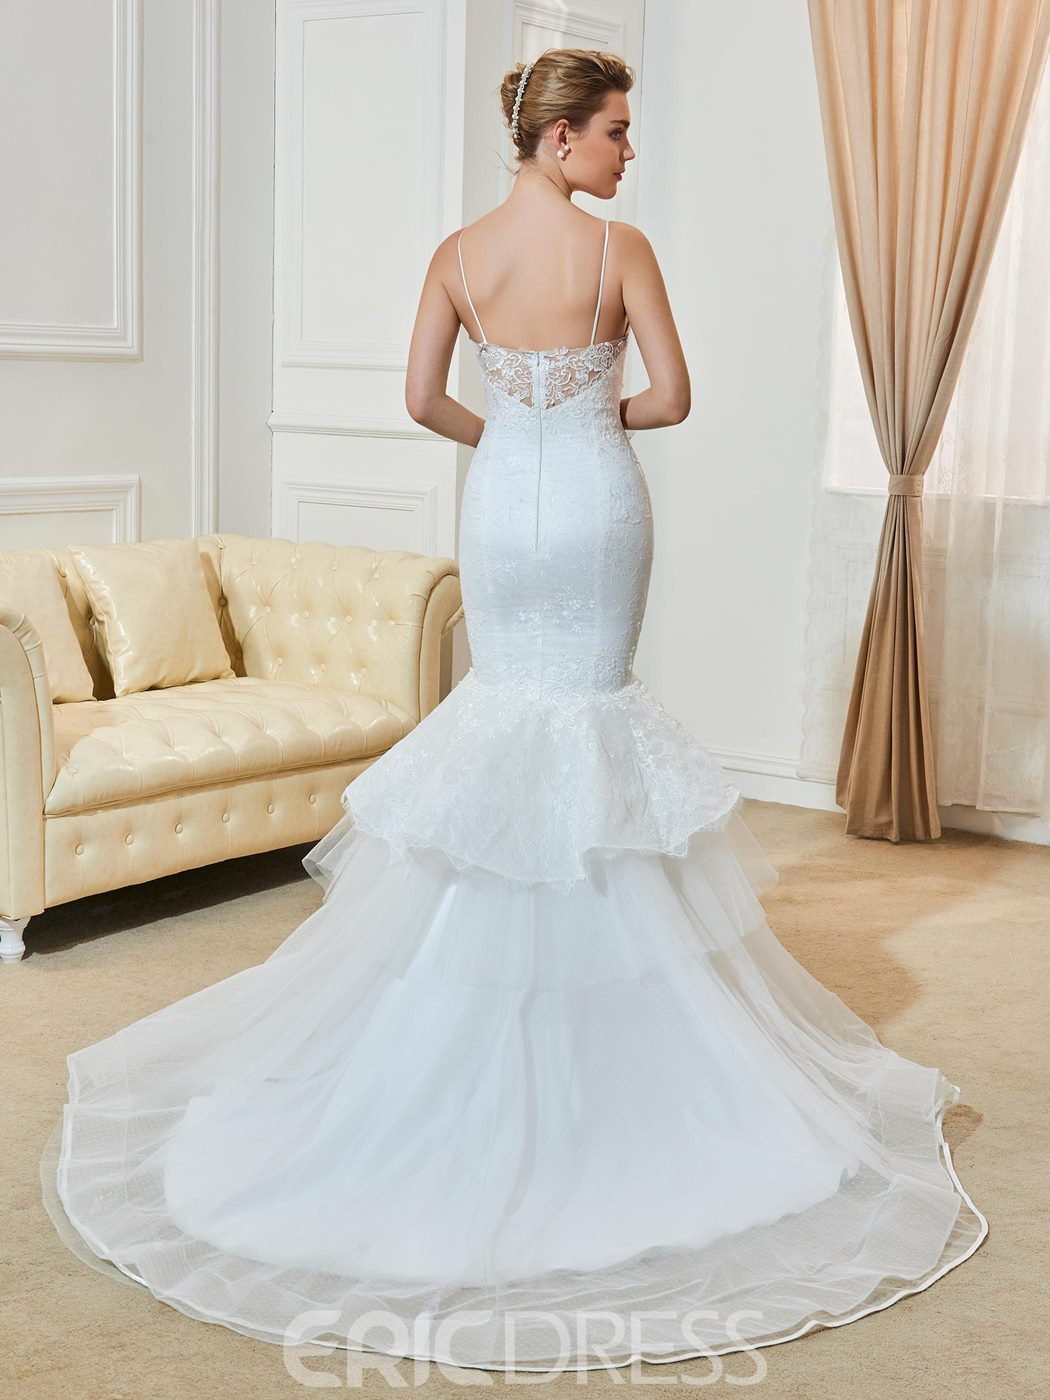 Ericdress Fashionable Spaghetti Straps Appliques Mermaid Wedding Dress